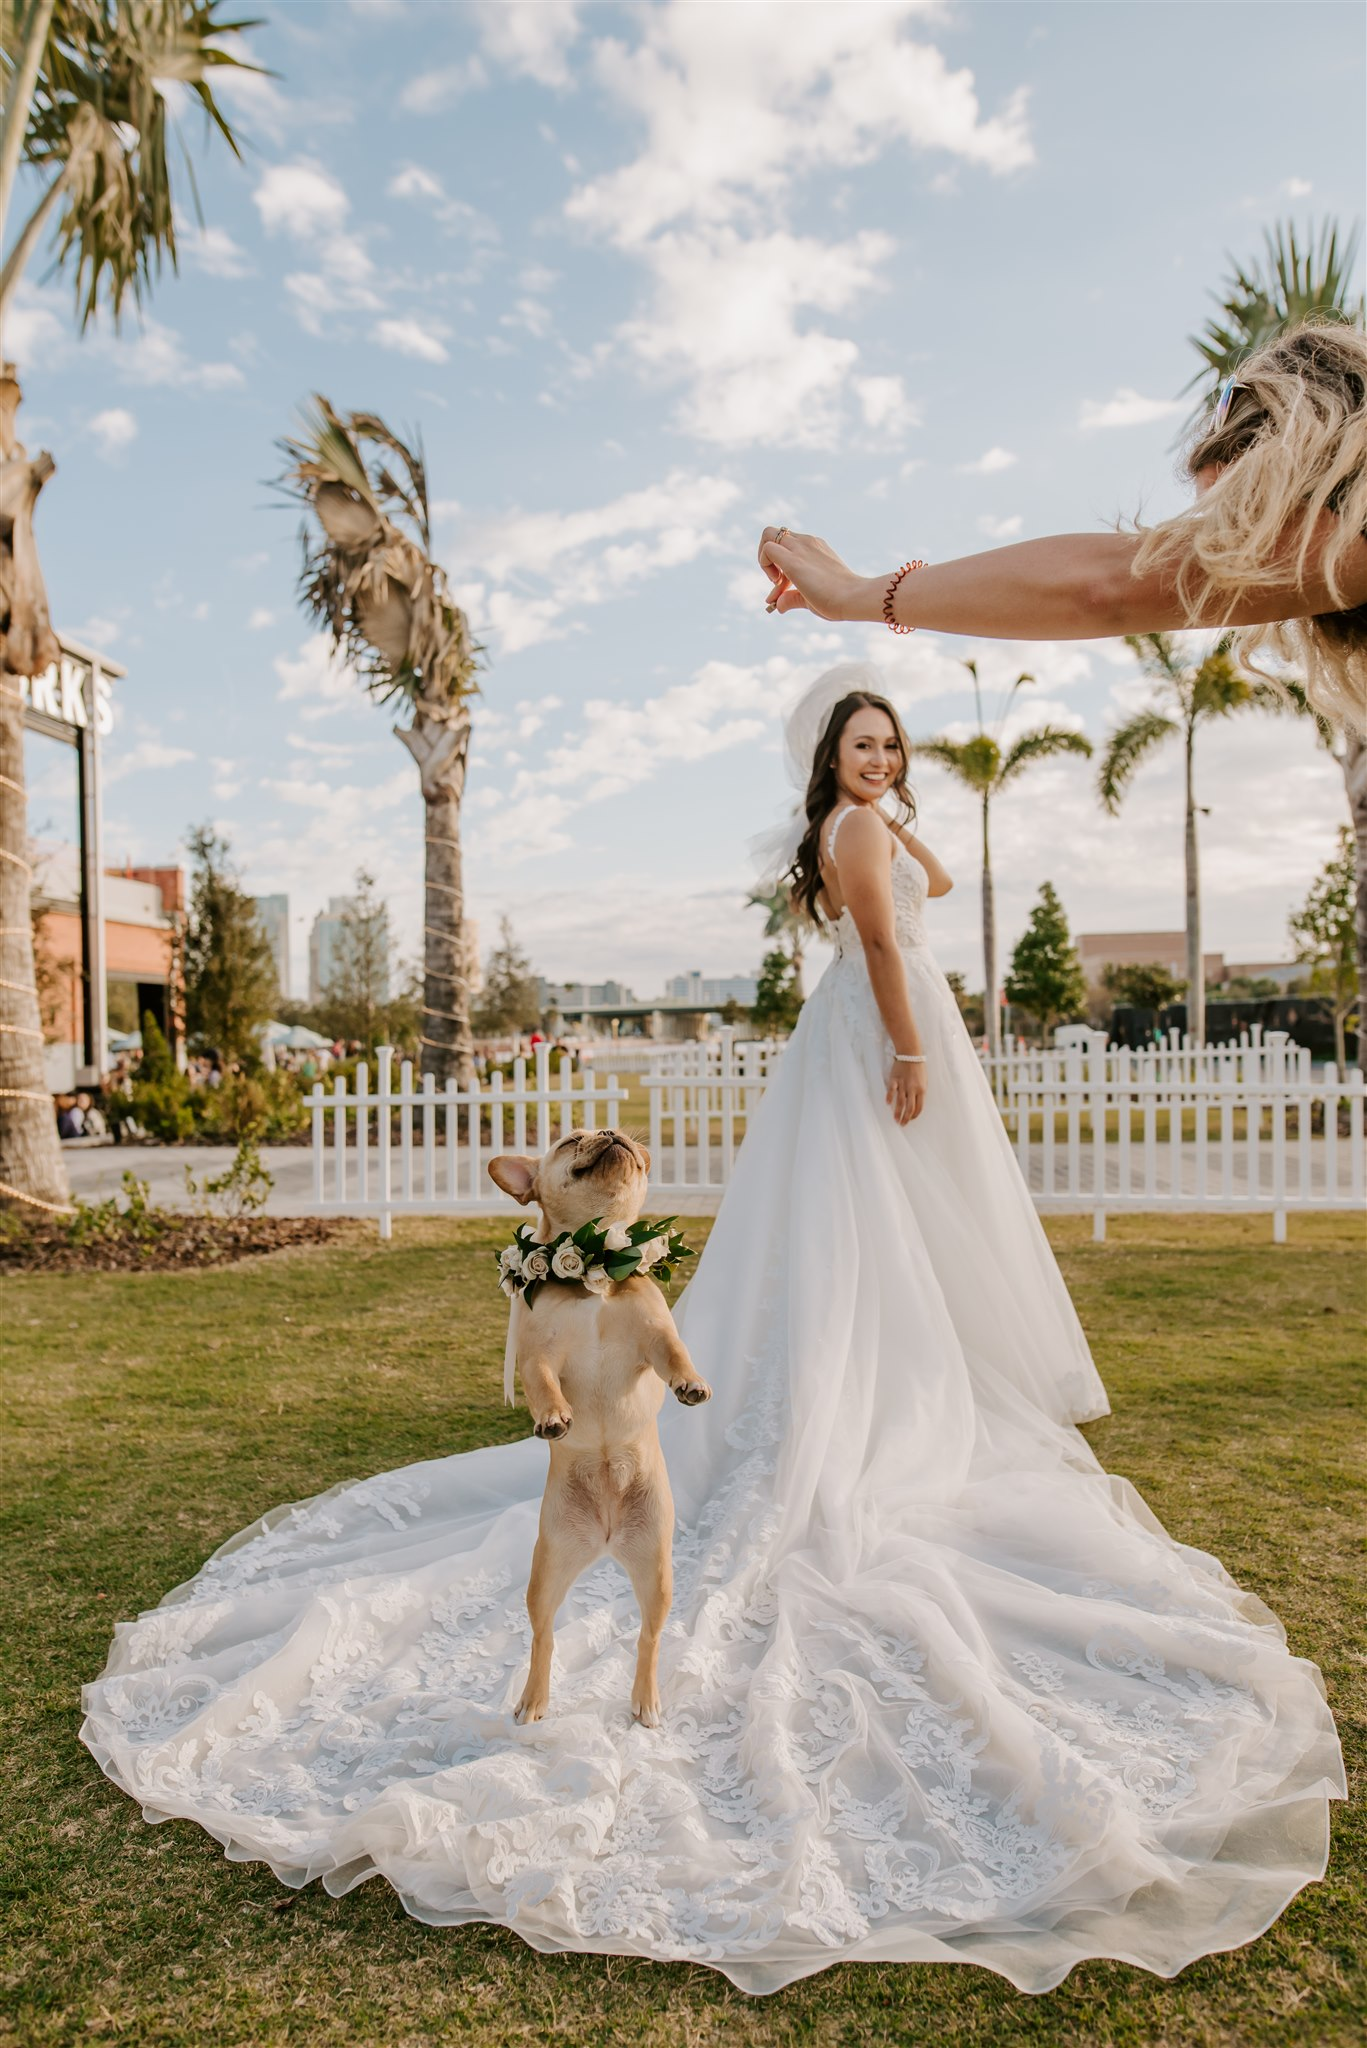 dog standing on back legs on bride's train